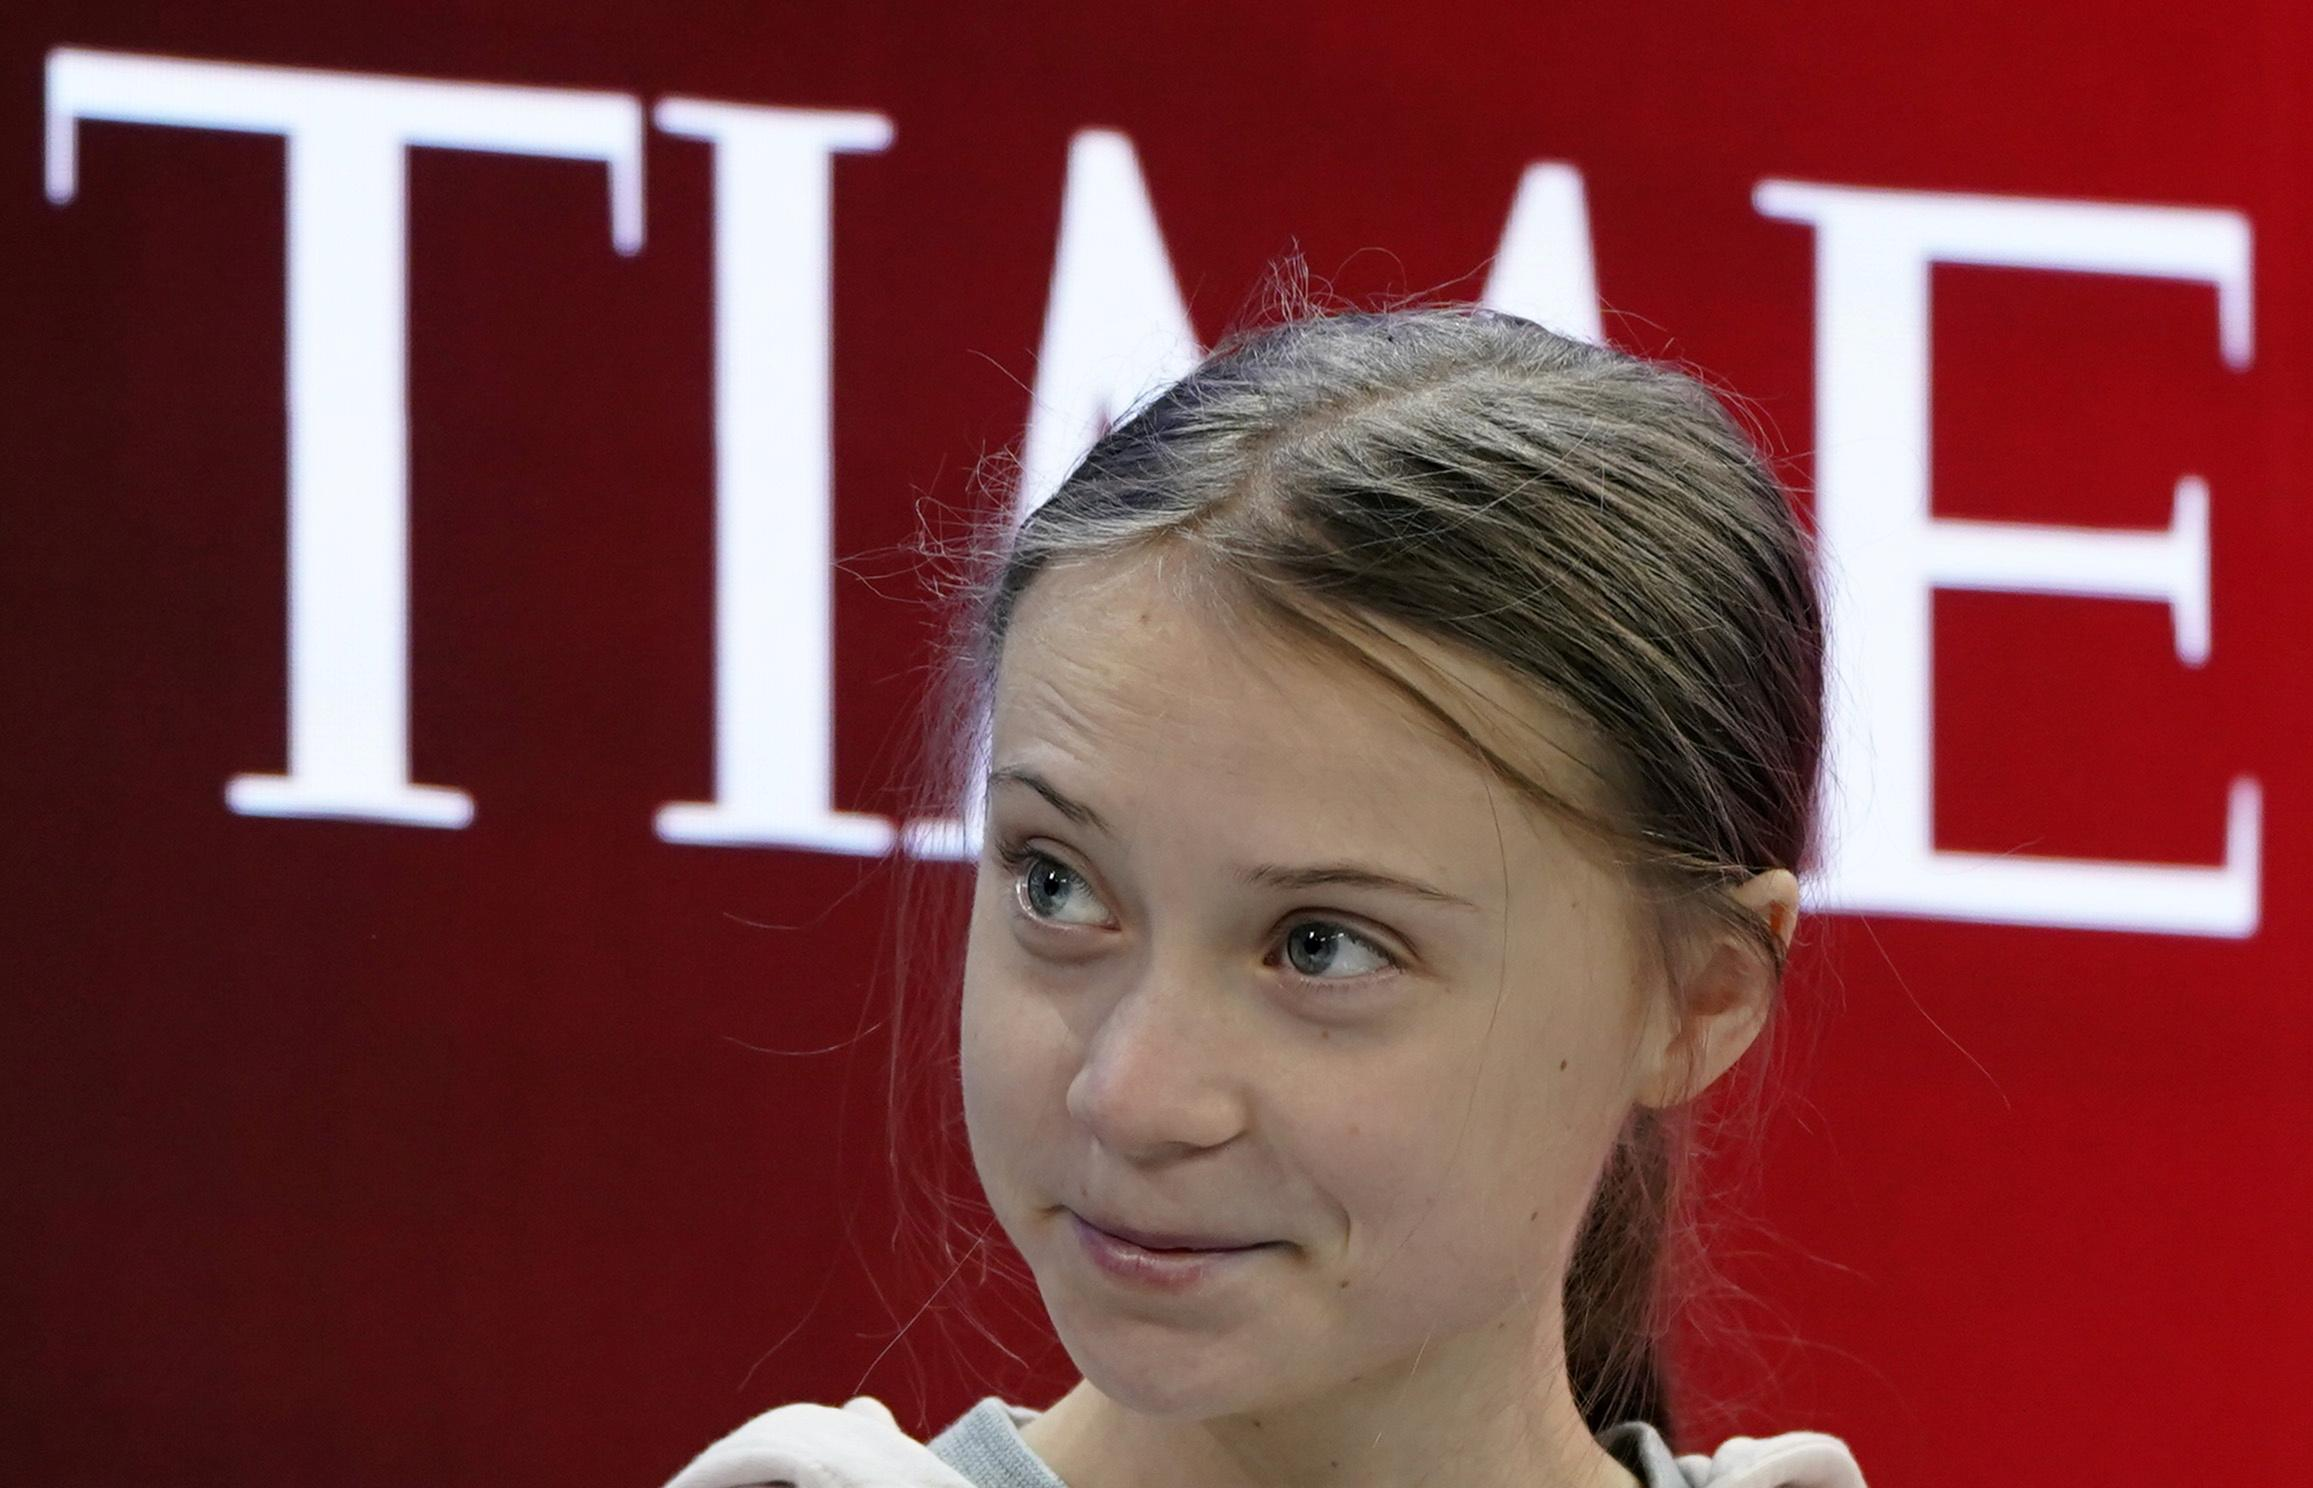 Greta Thunberg: 'Basically nothing' has been done about climate crisis